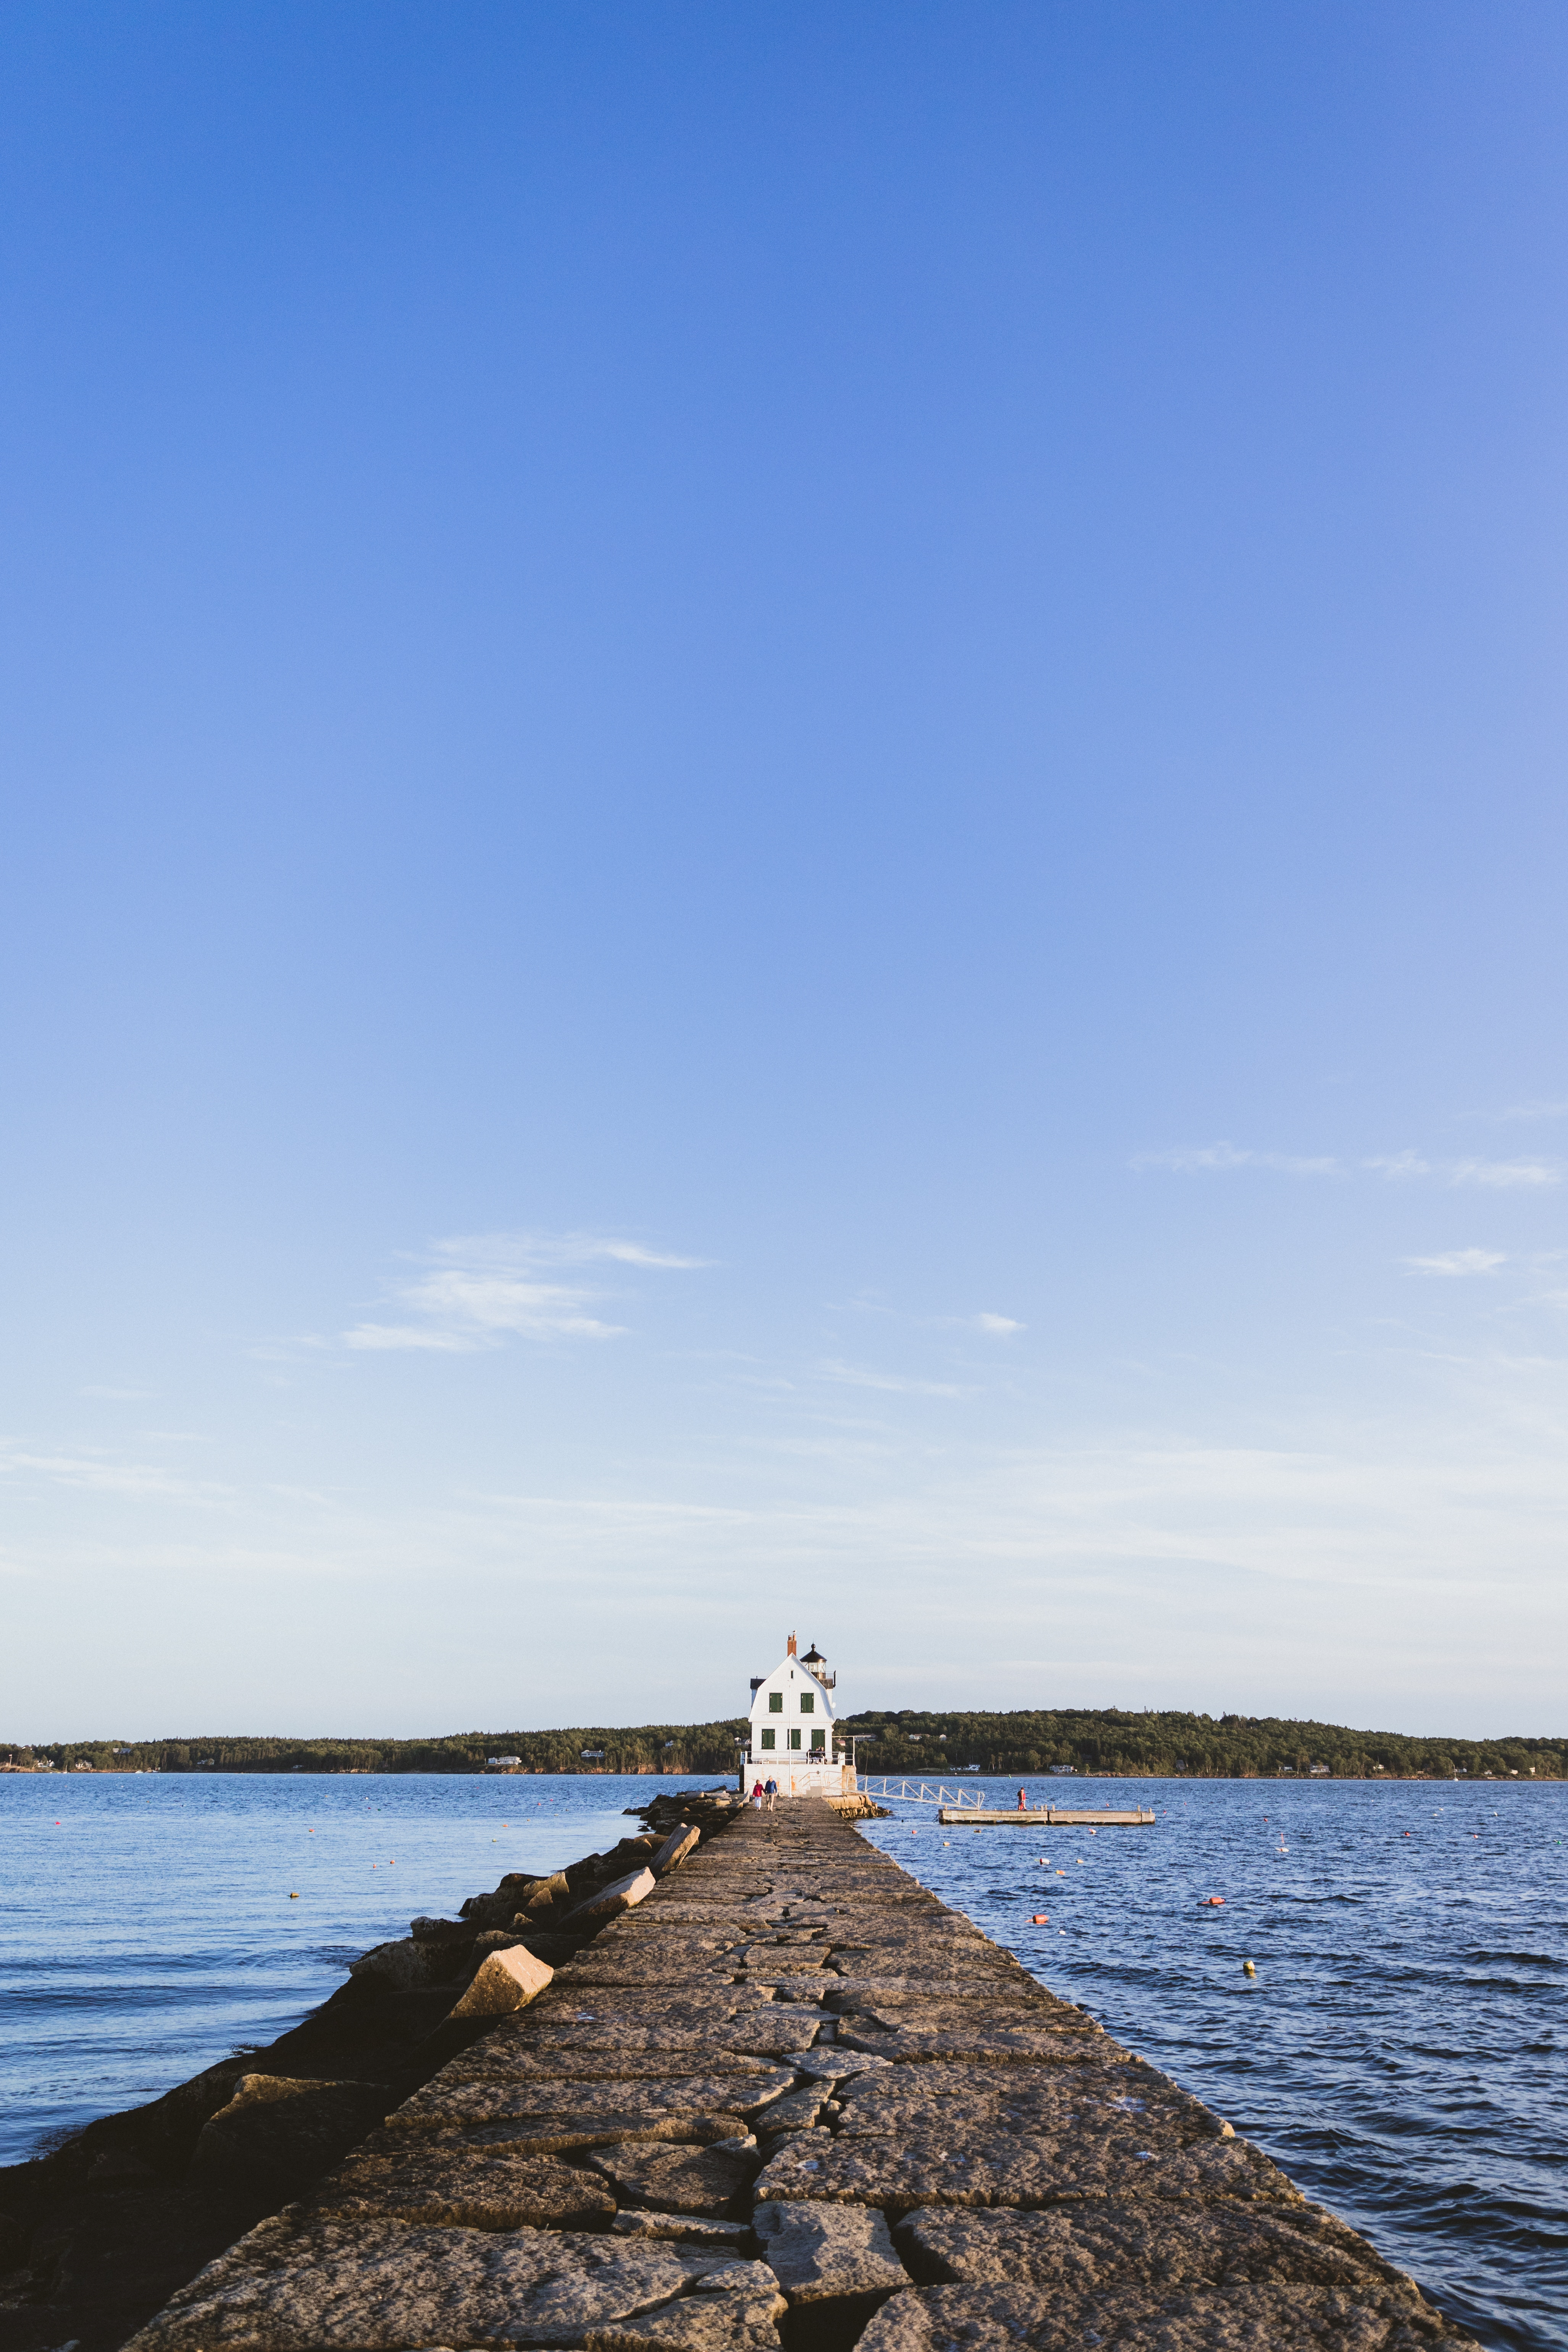 best things to do in rockland maine for families and couples - visit lighthouses